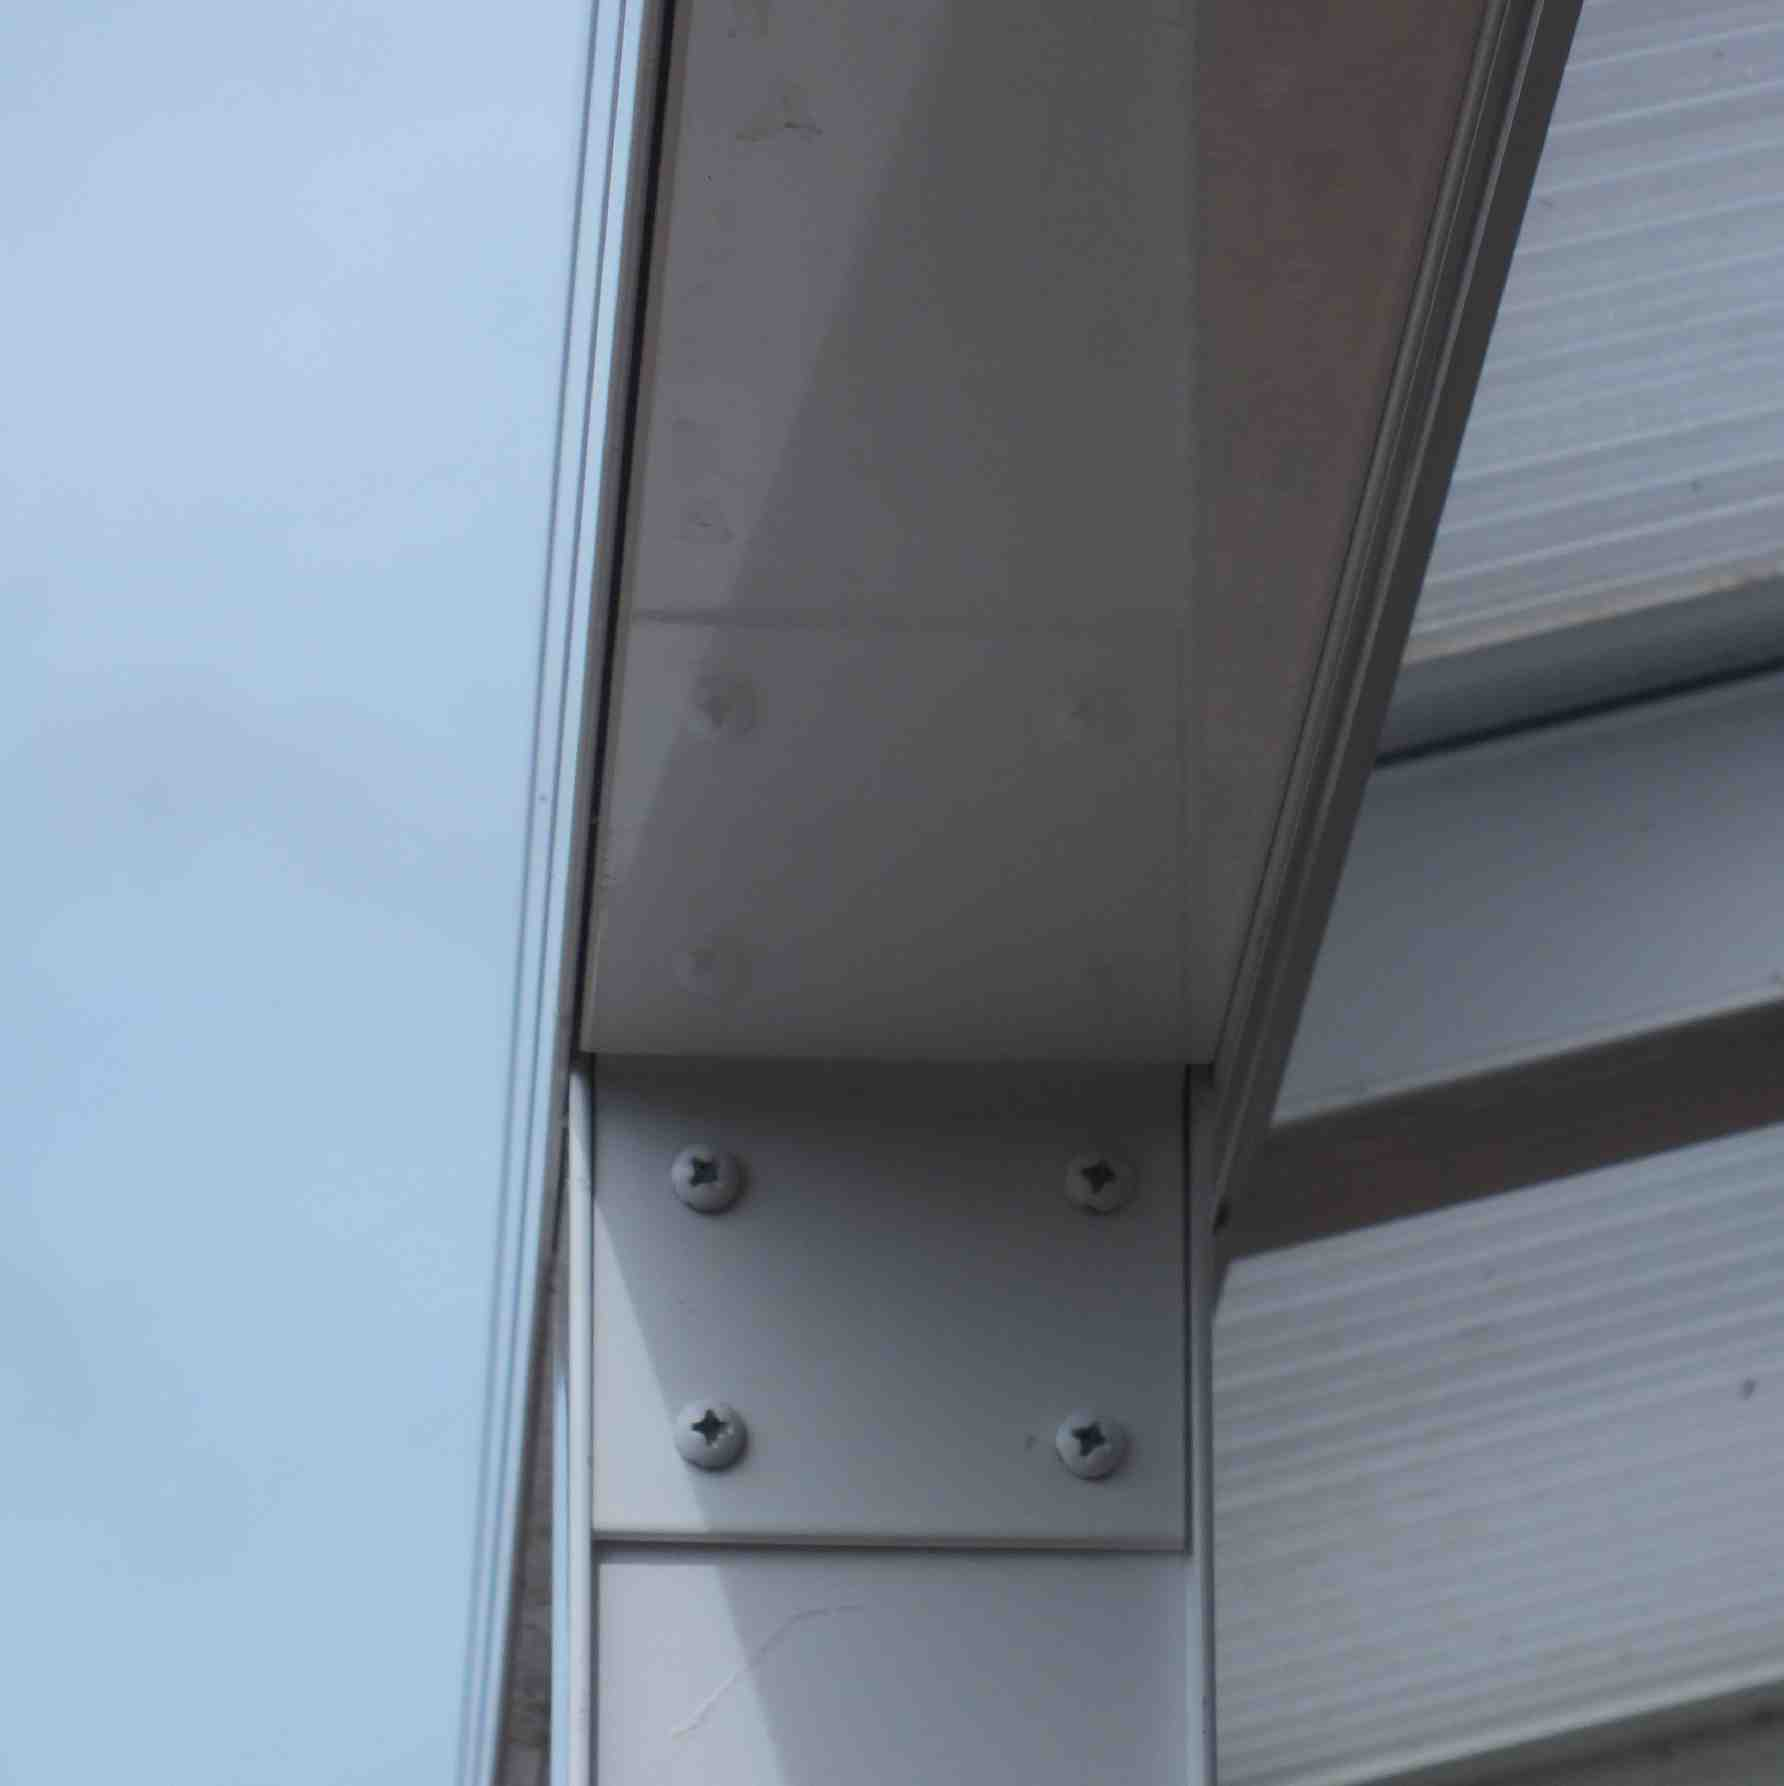 Affordable Omega Verandah with 6mm Glass Clear Plate Polycarbonate Glazing - 2.1m (W) x 2.0m (P), (2) Supporting Posts